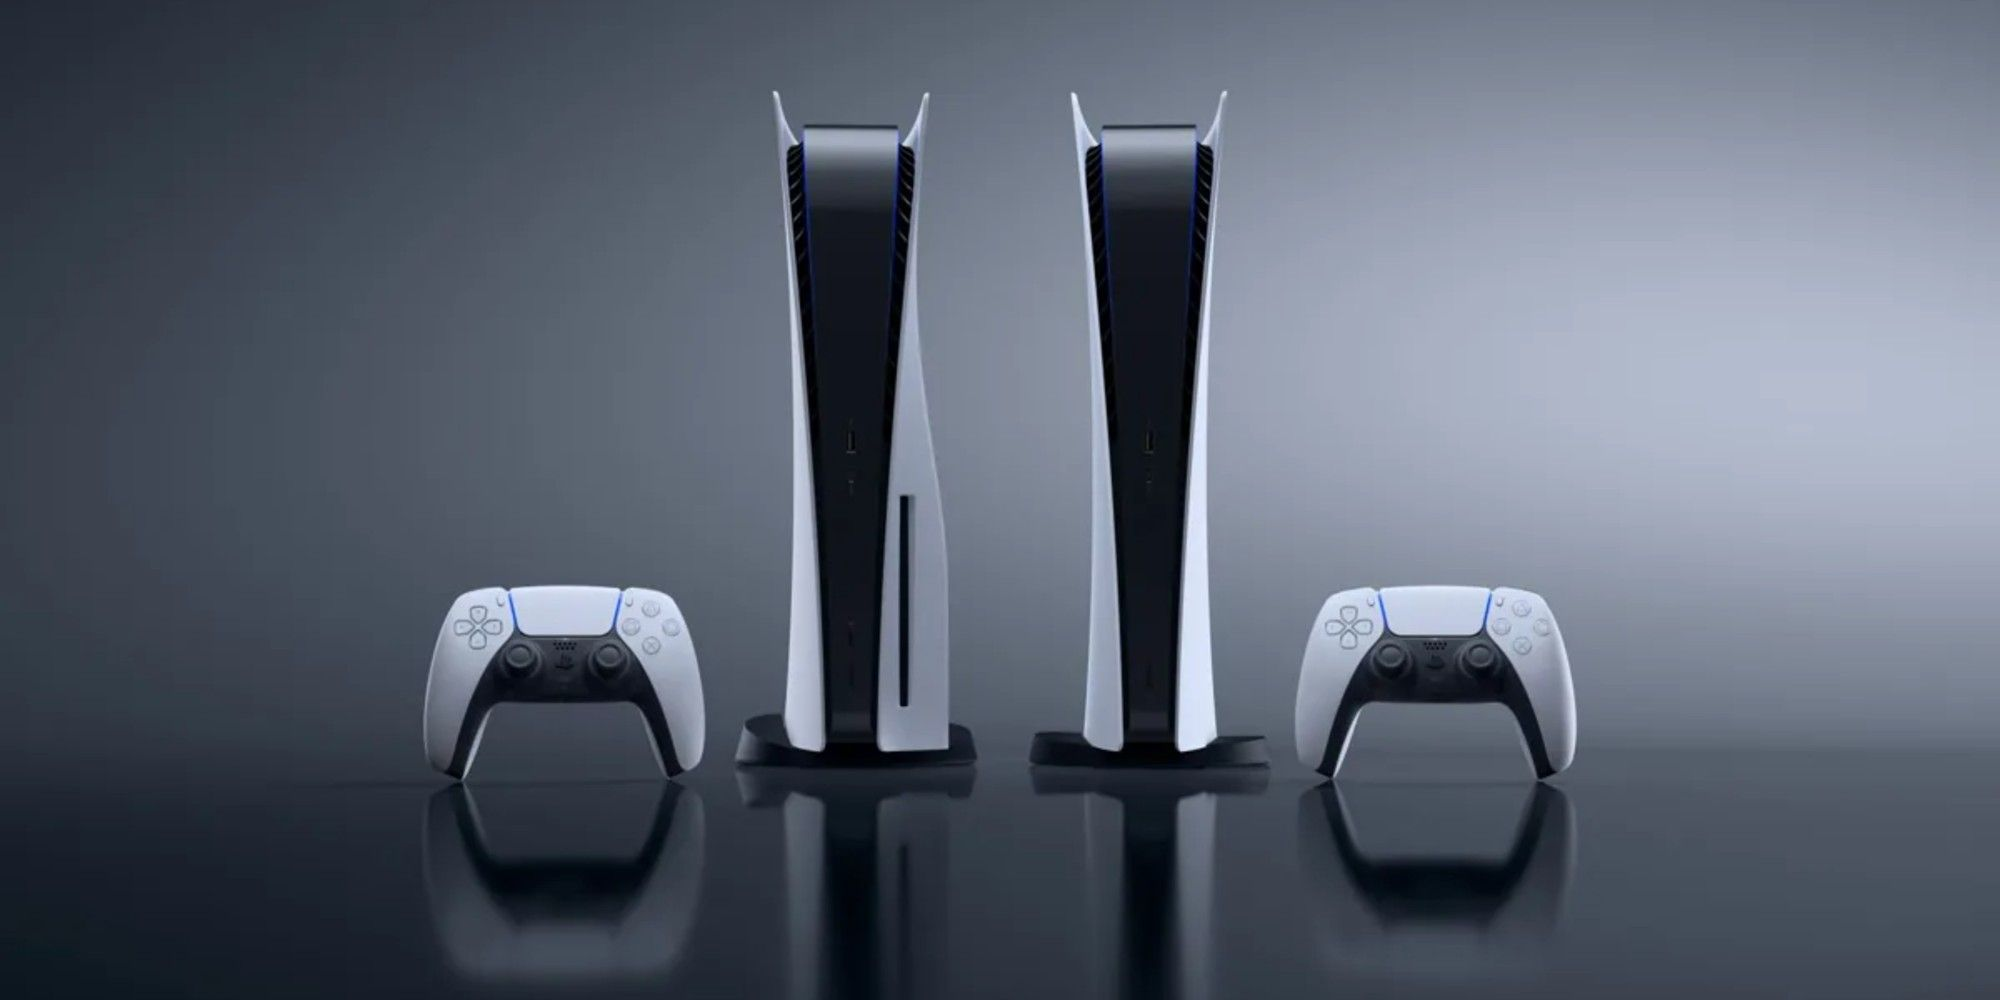 ps5s-(4)